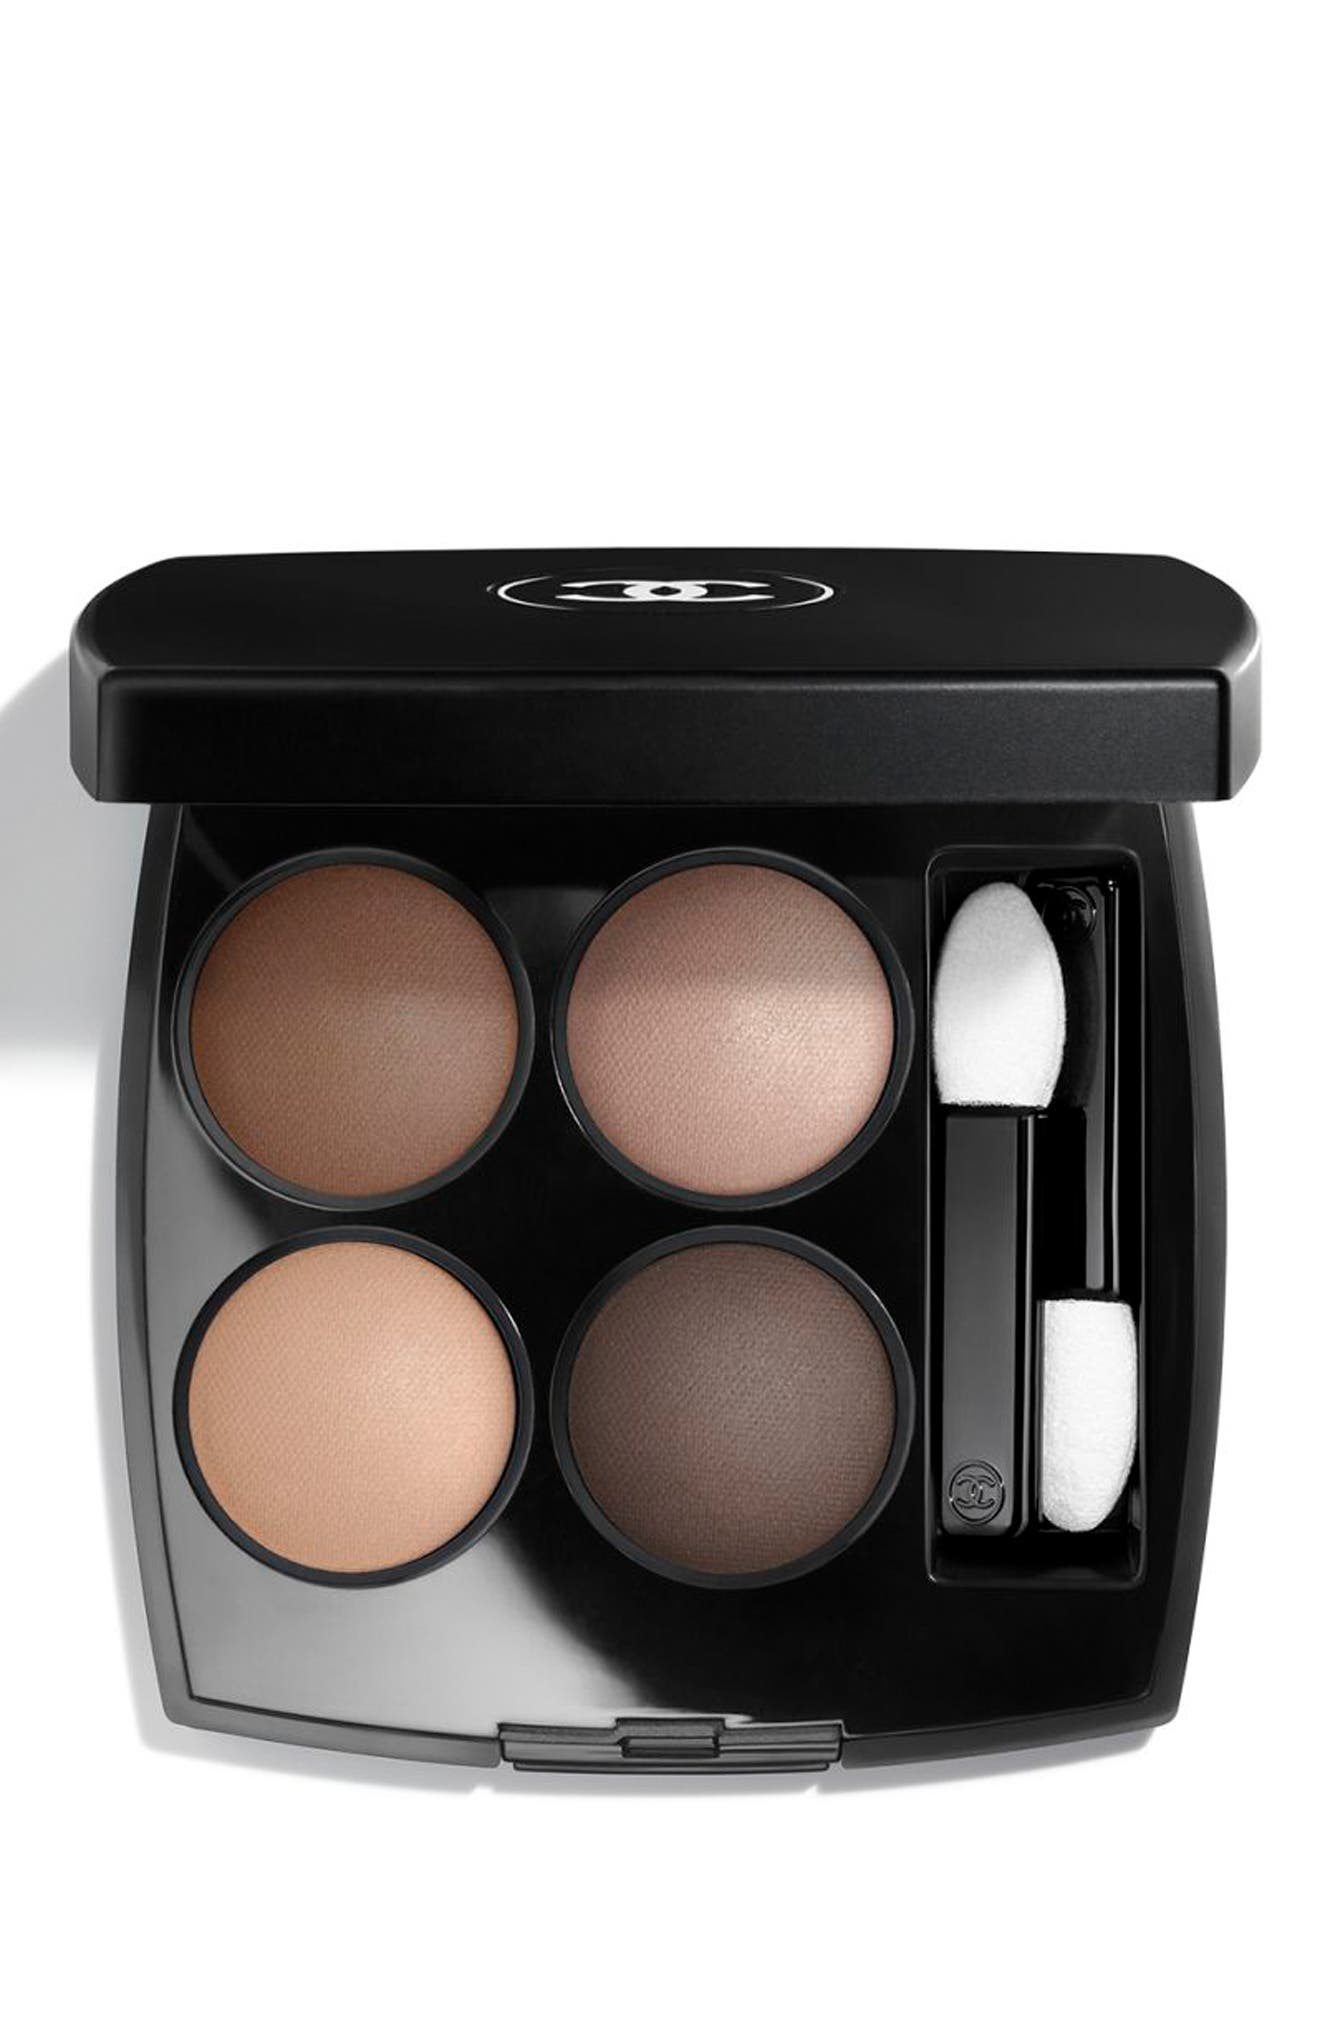 LES 4 OMBRES<br />Multi-Effect Quadra Eyeshadow,                             Main thumbnail 1, color,                             308 Clair-Obscur